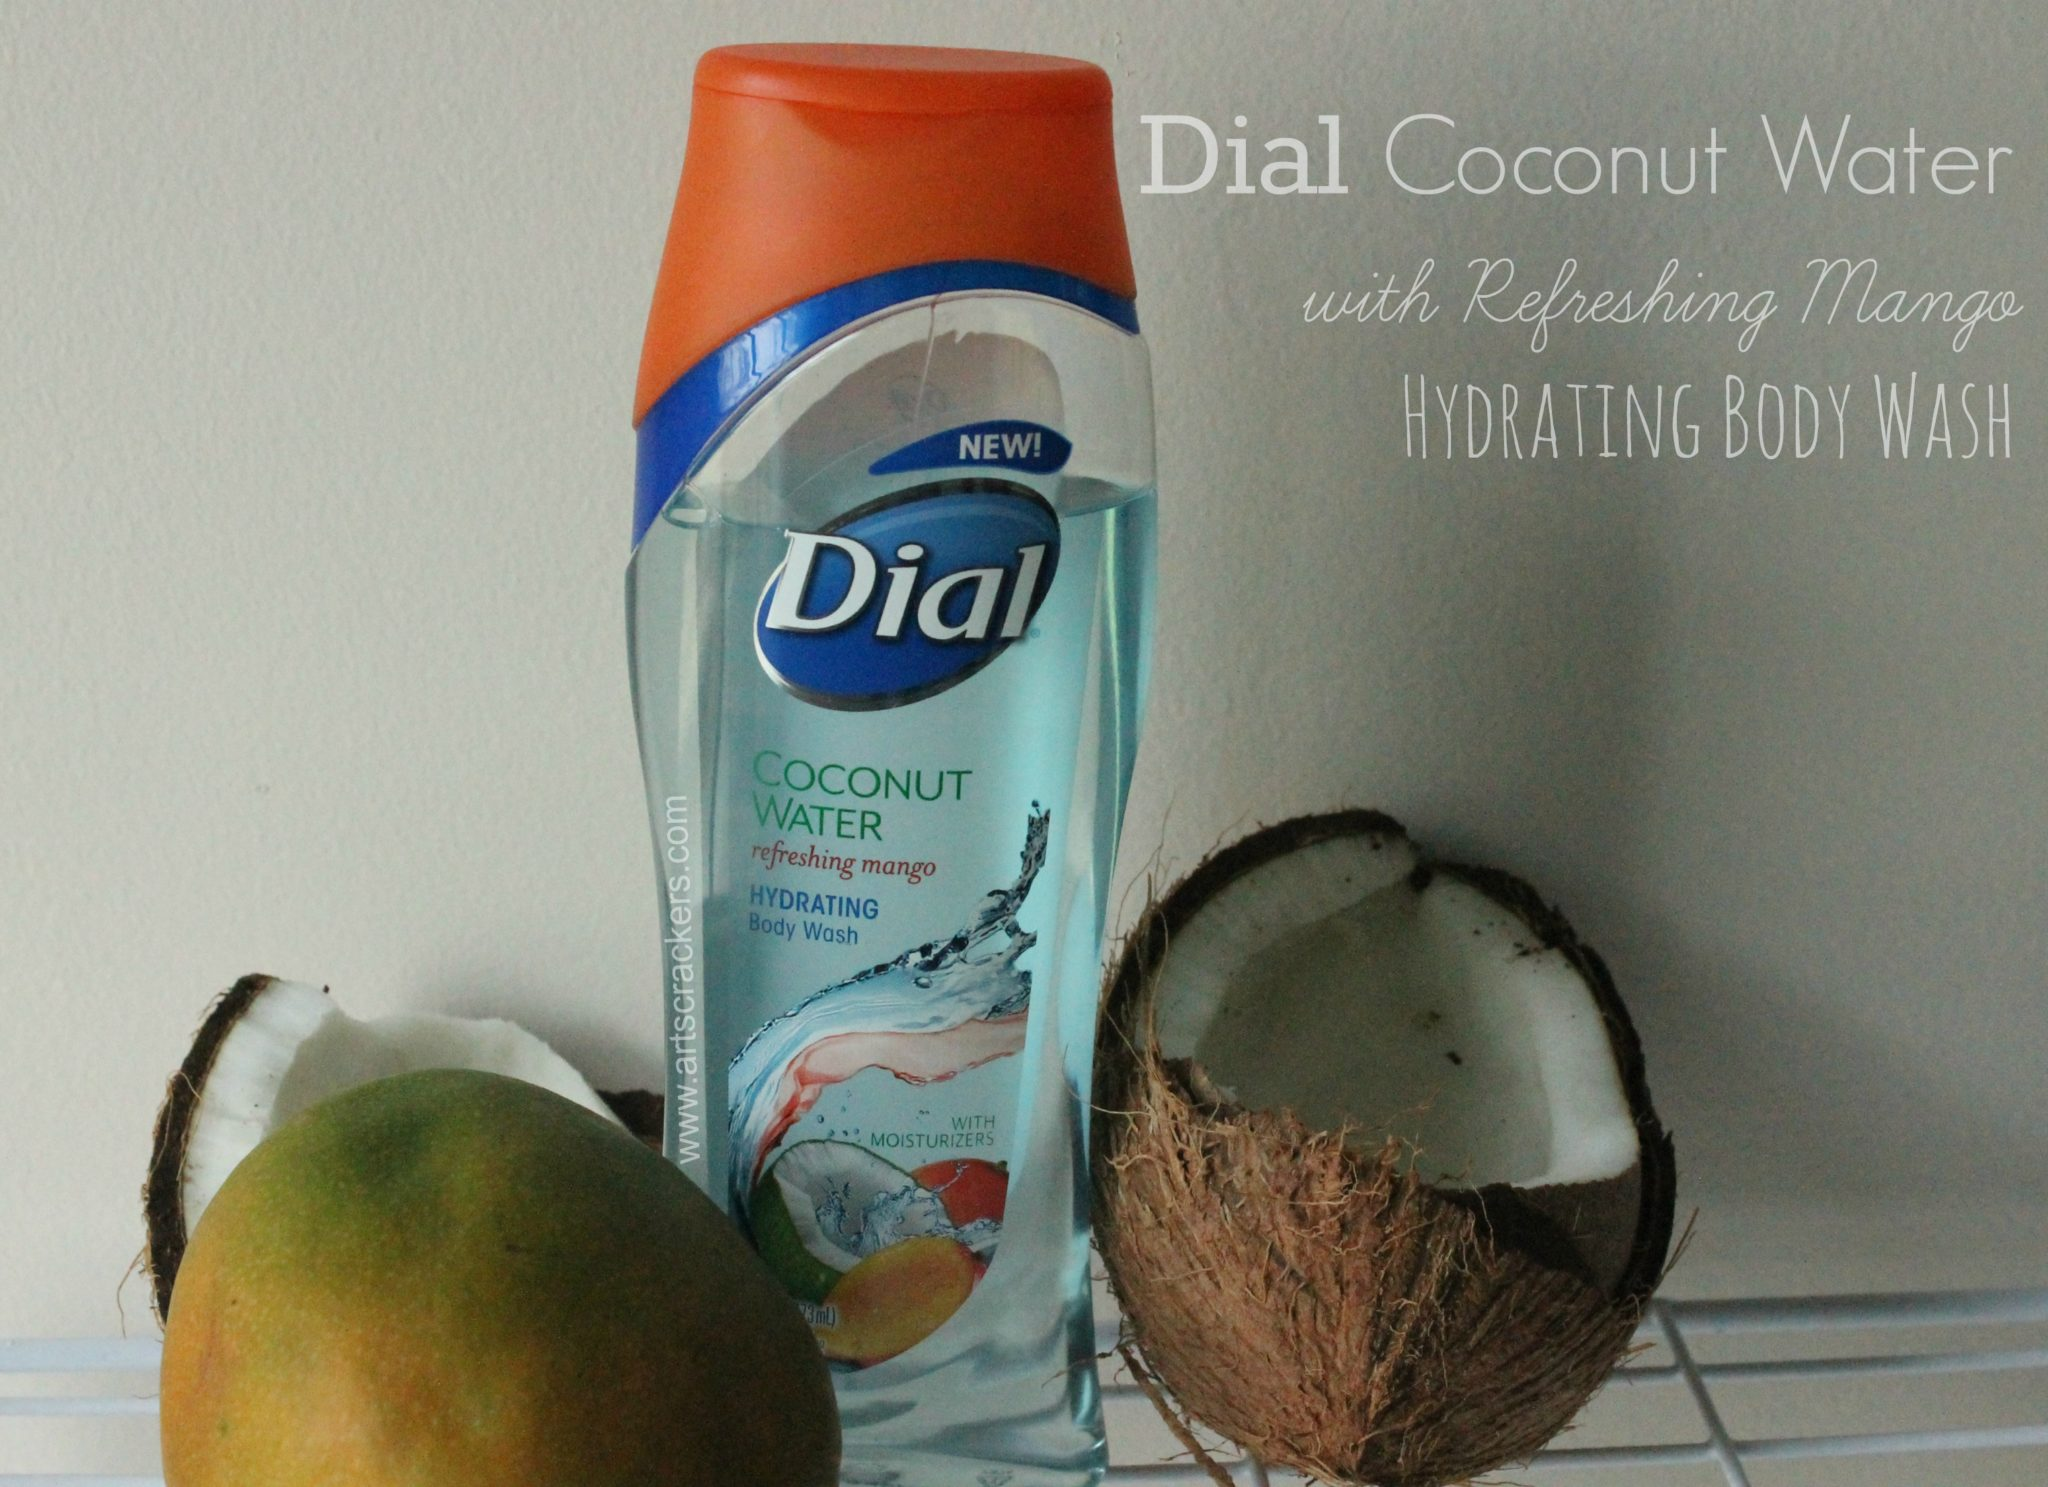 Dial Coconut Water with Refreshing Mango Hydrating Body Wash